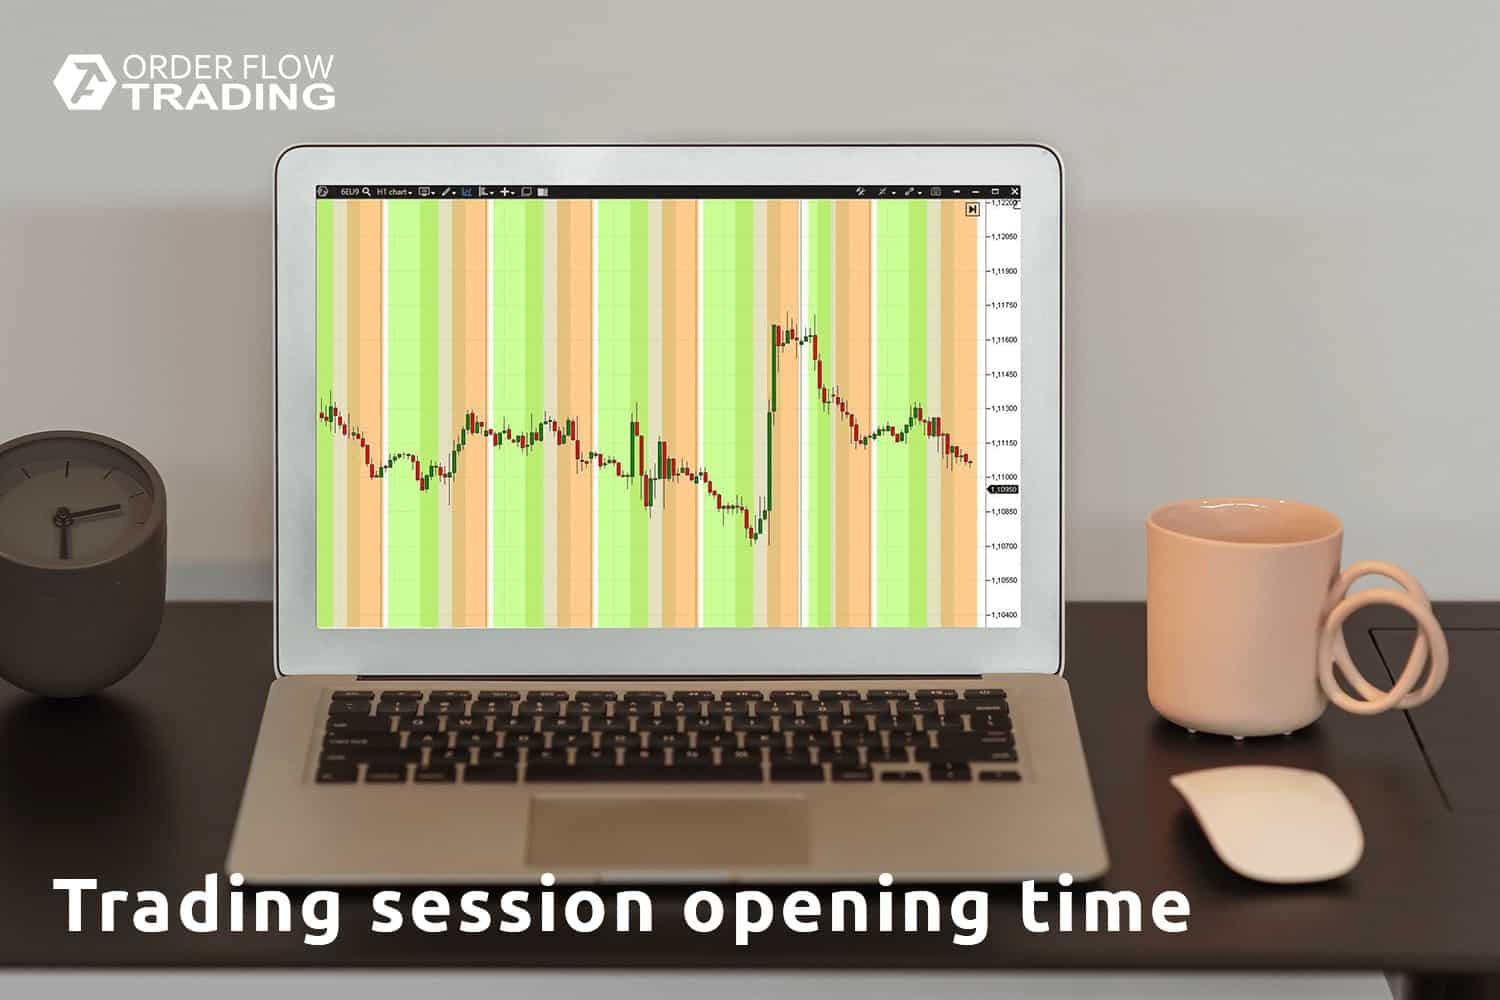 Trading session opening time. Schedule